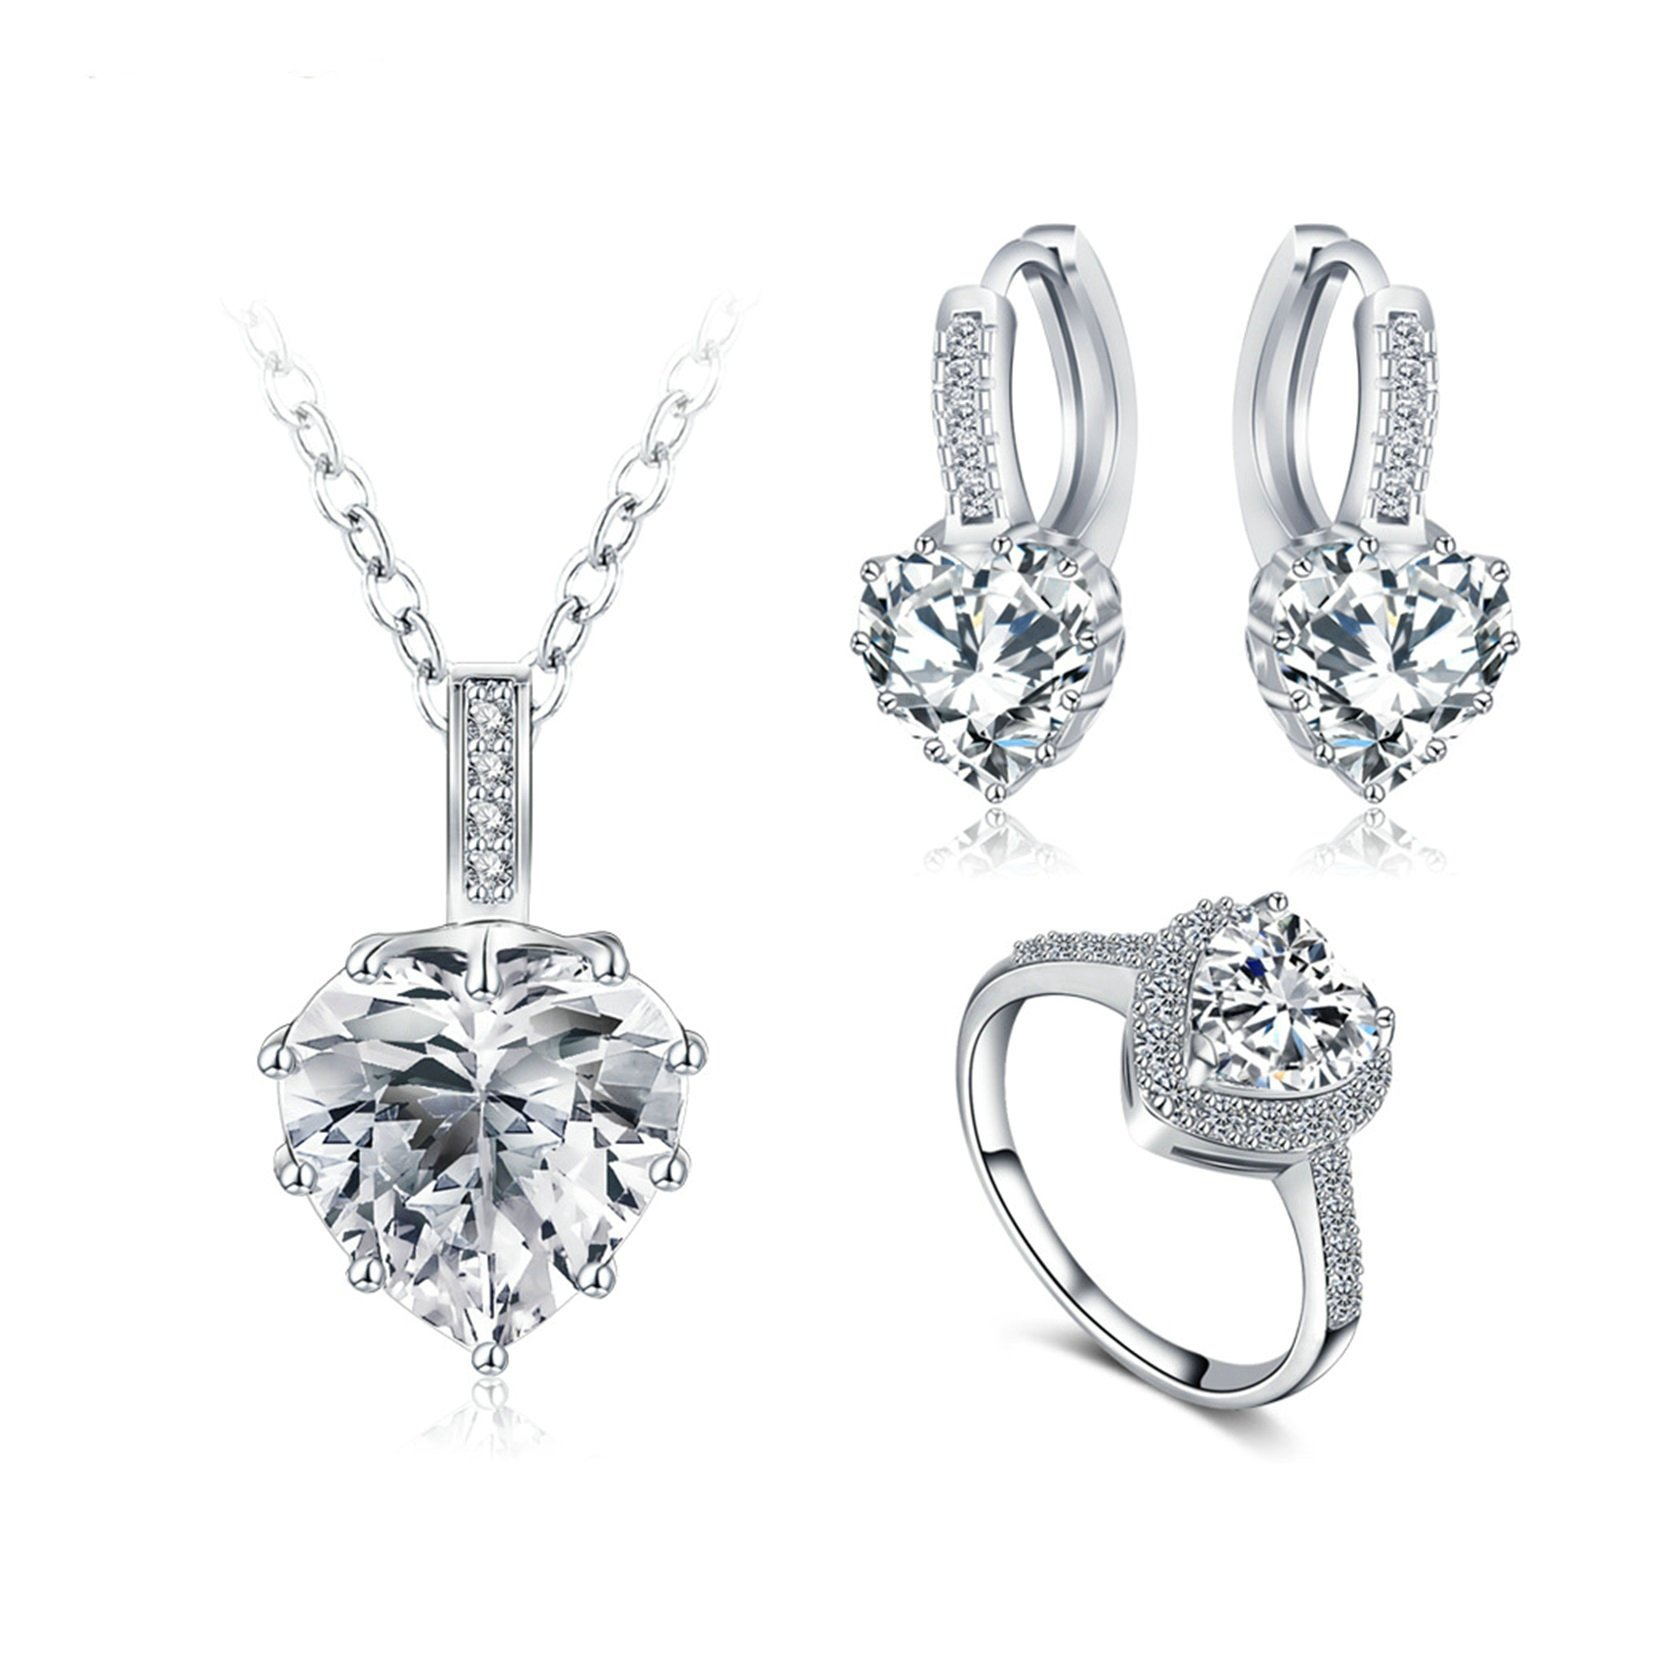 MoAndy Silver Plated Necklace Hoop Earrings Ring Jewelry Set for Women Heart Shape CZ White Size 8